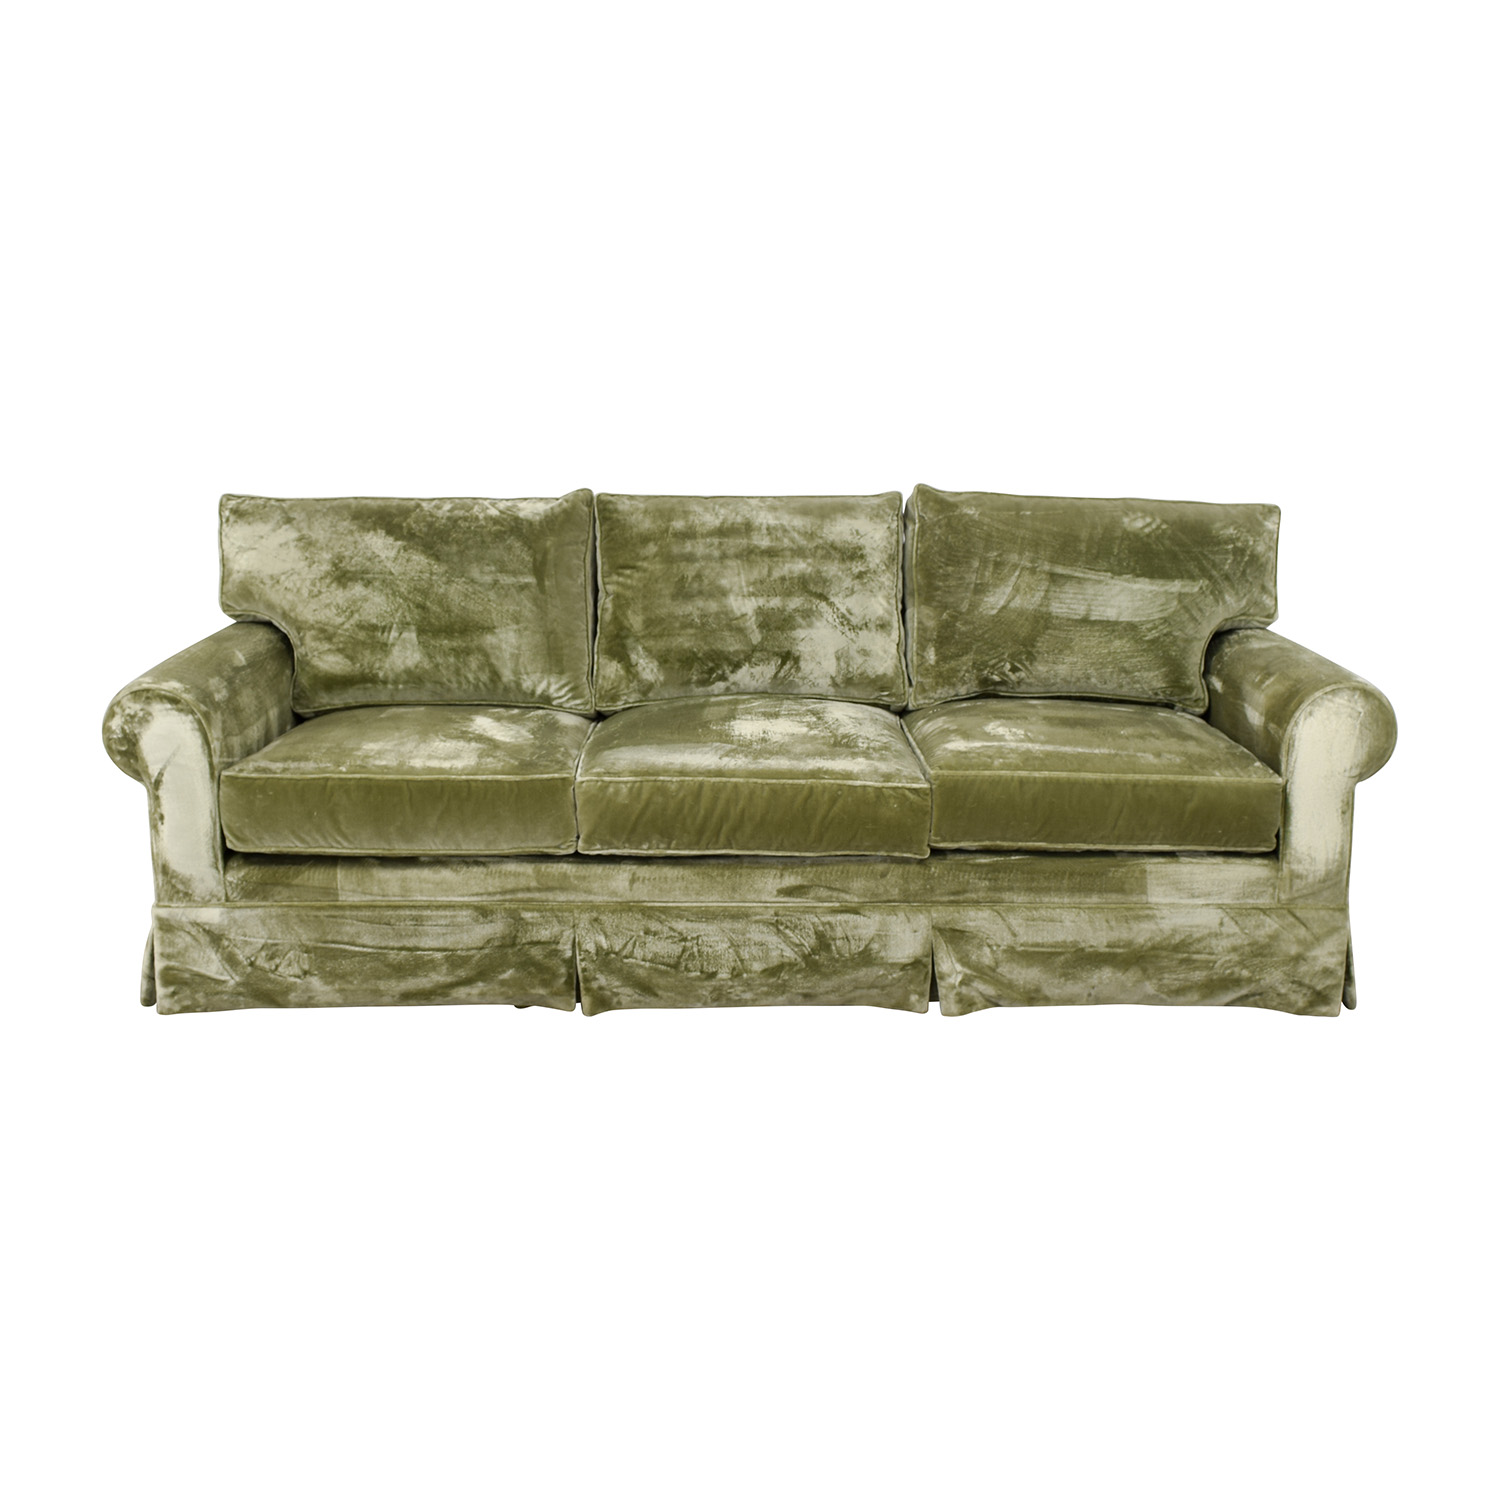 81% OFF - Green Velvet Sofa / Sofas